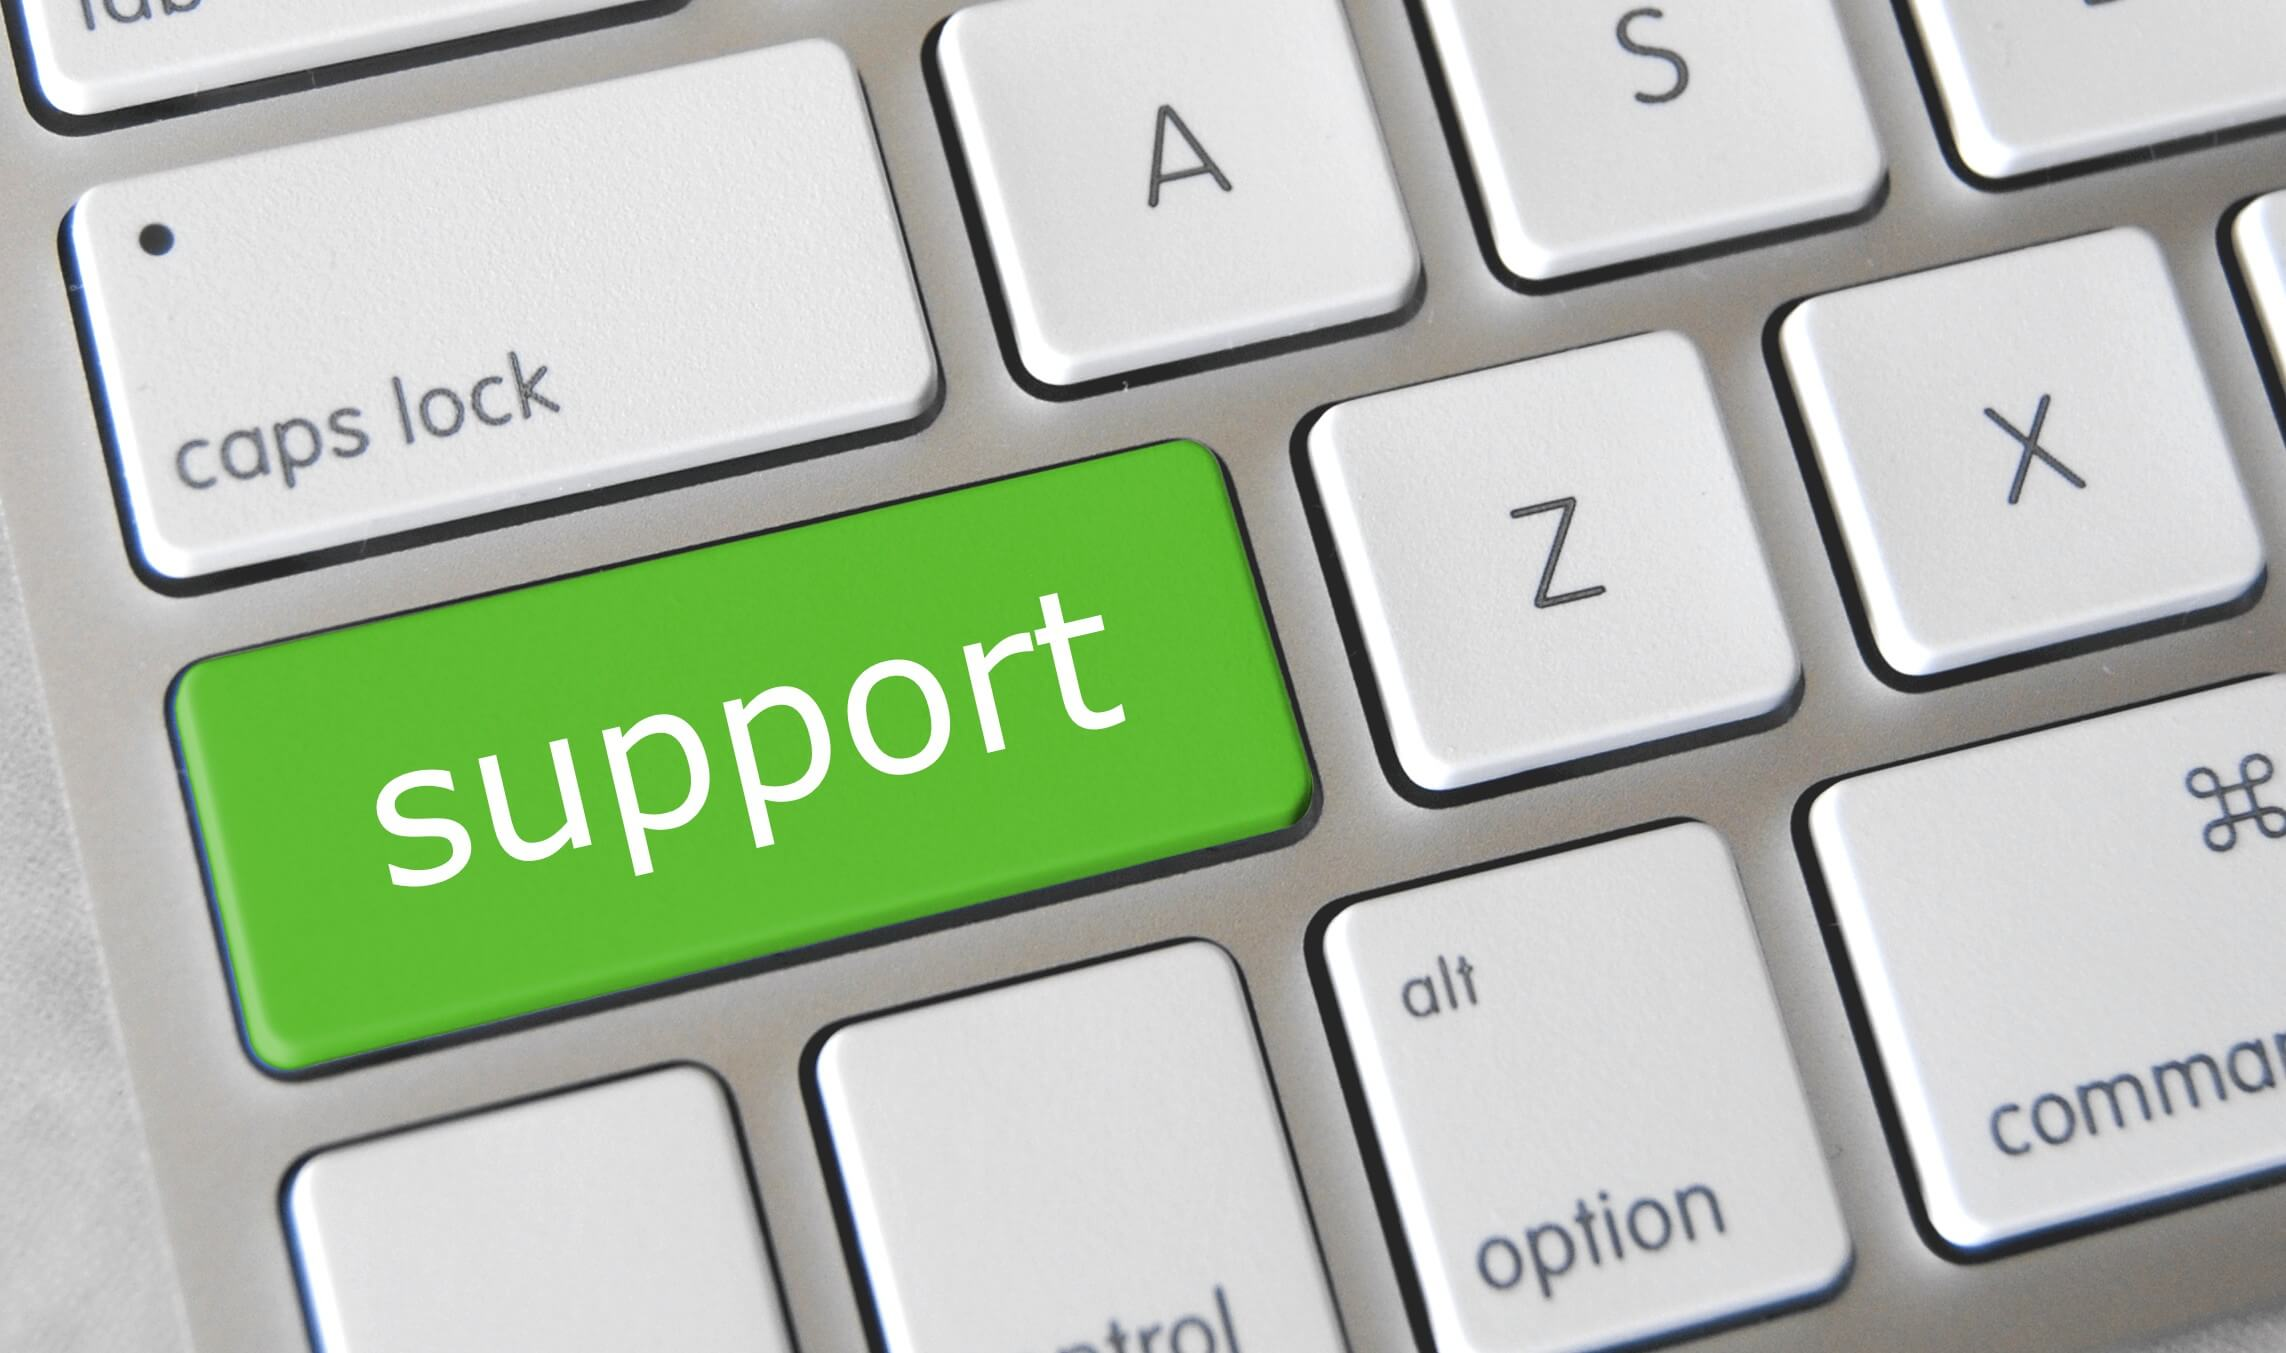 How Do You Support Your Software?